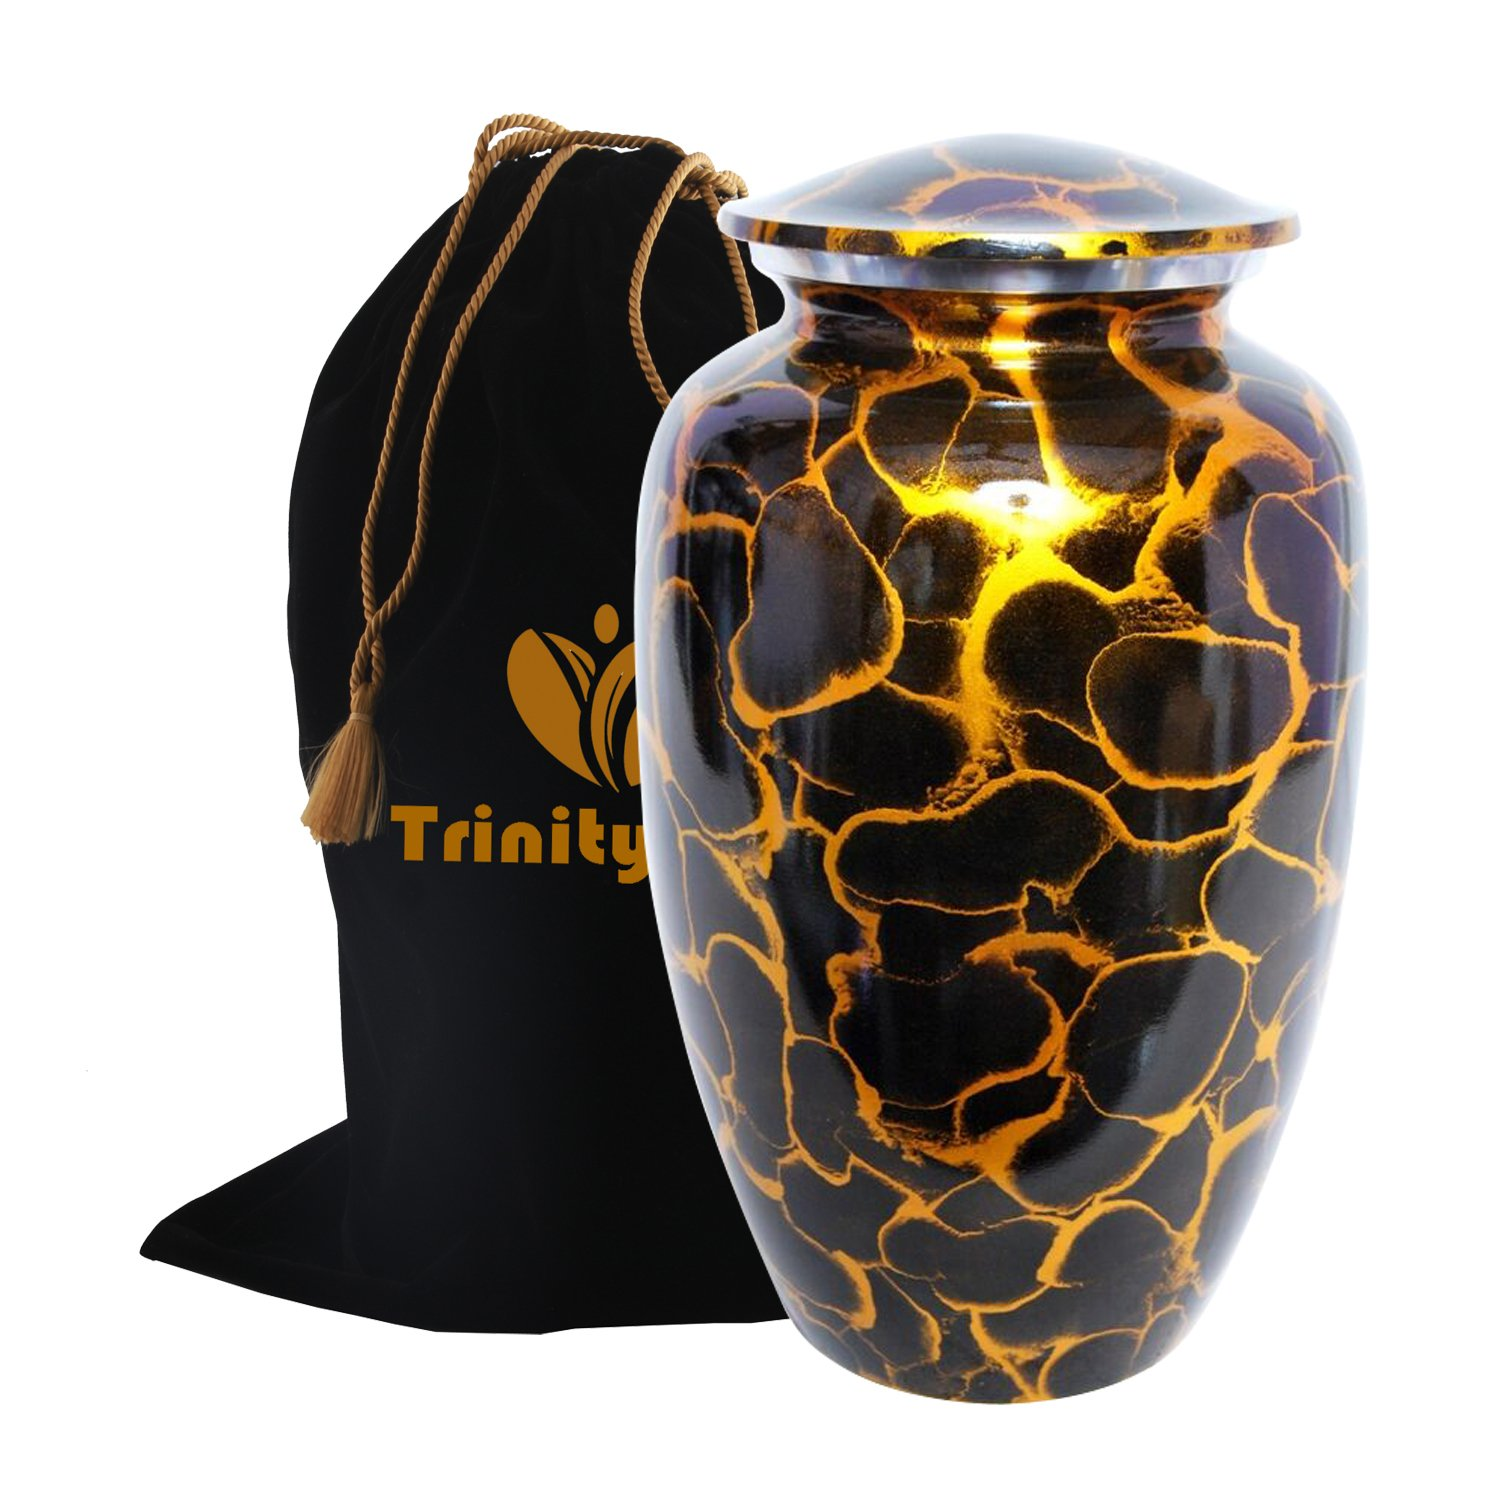 Leopard Print Cremation Urn - Beautifully Handcrafted Adult Funeral Urn - Solid Metal Funeral Urn - Affordable Urn for Human Ashes with Free Velvet Bag